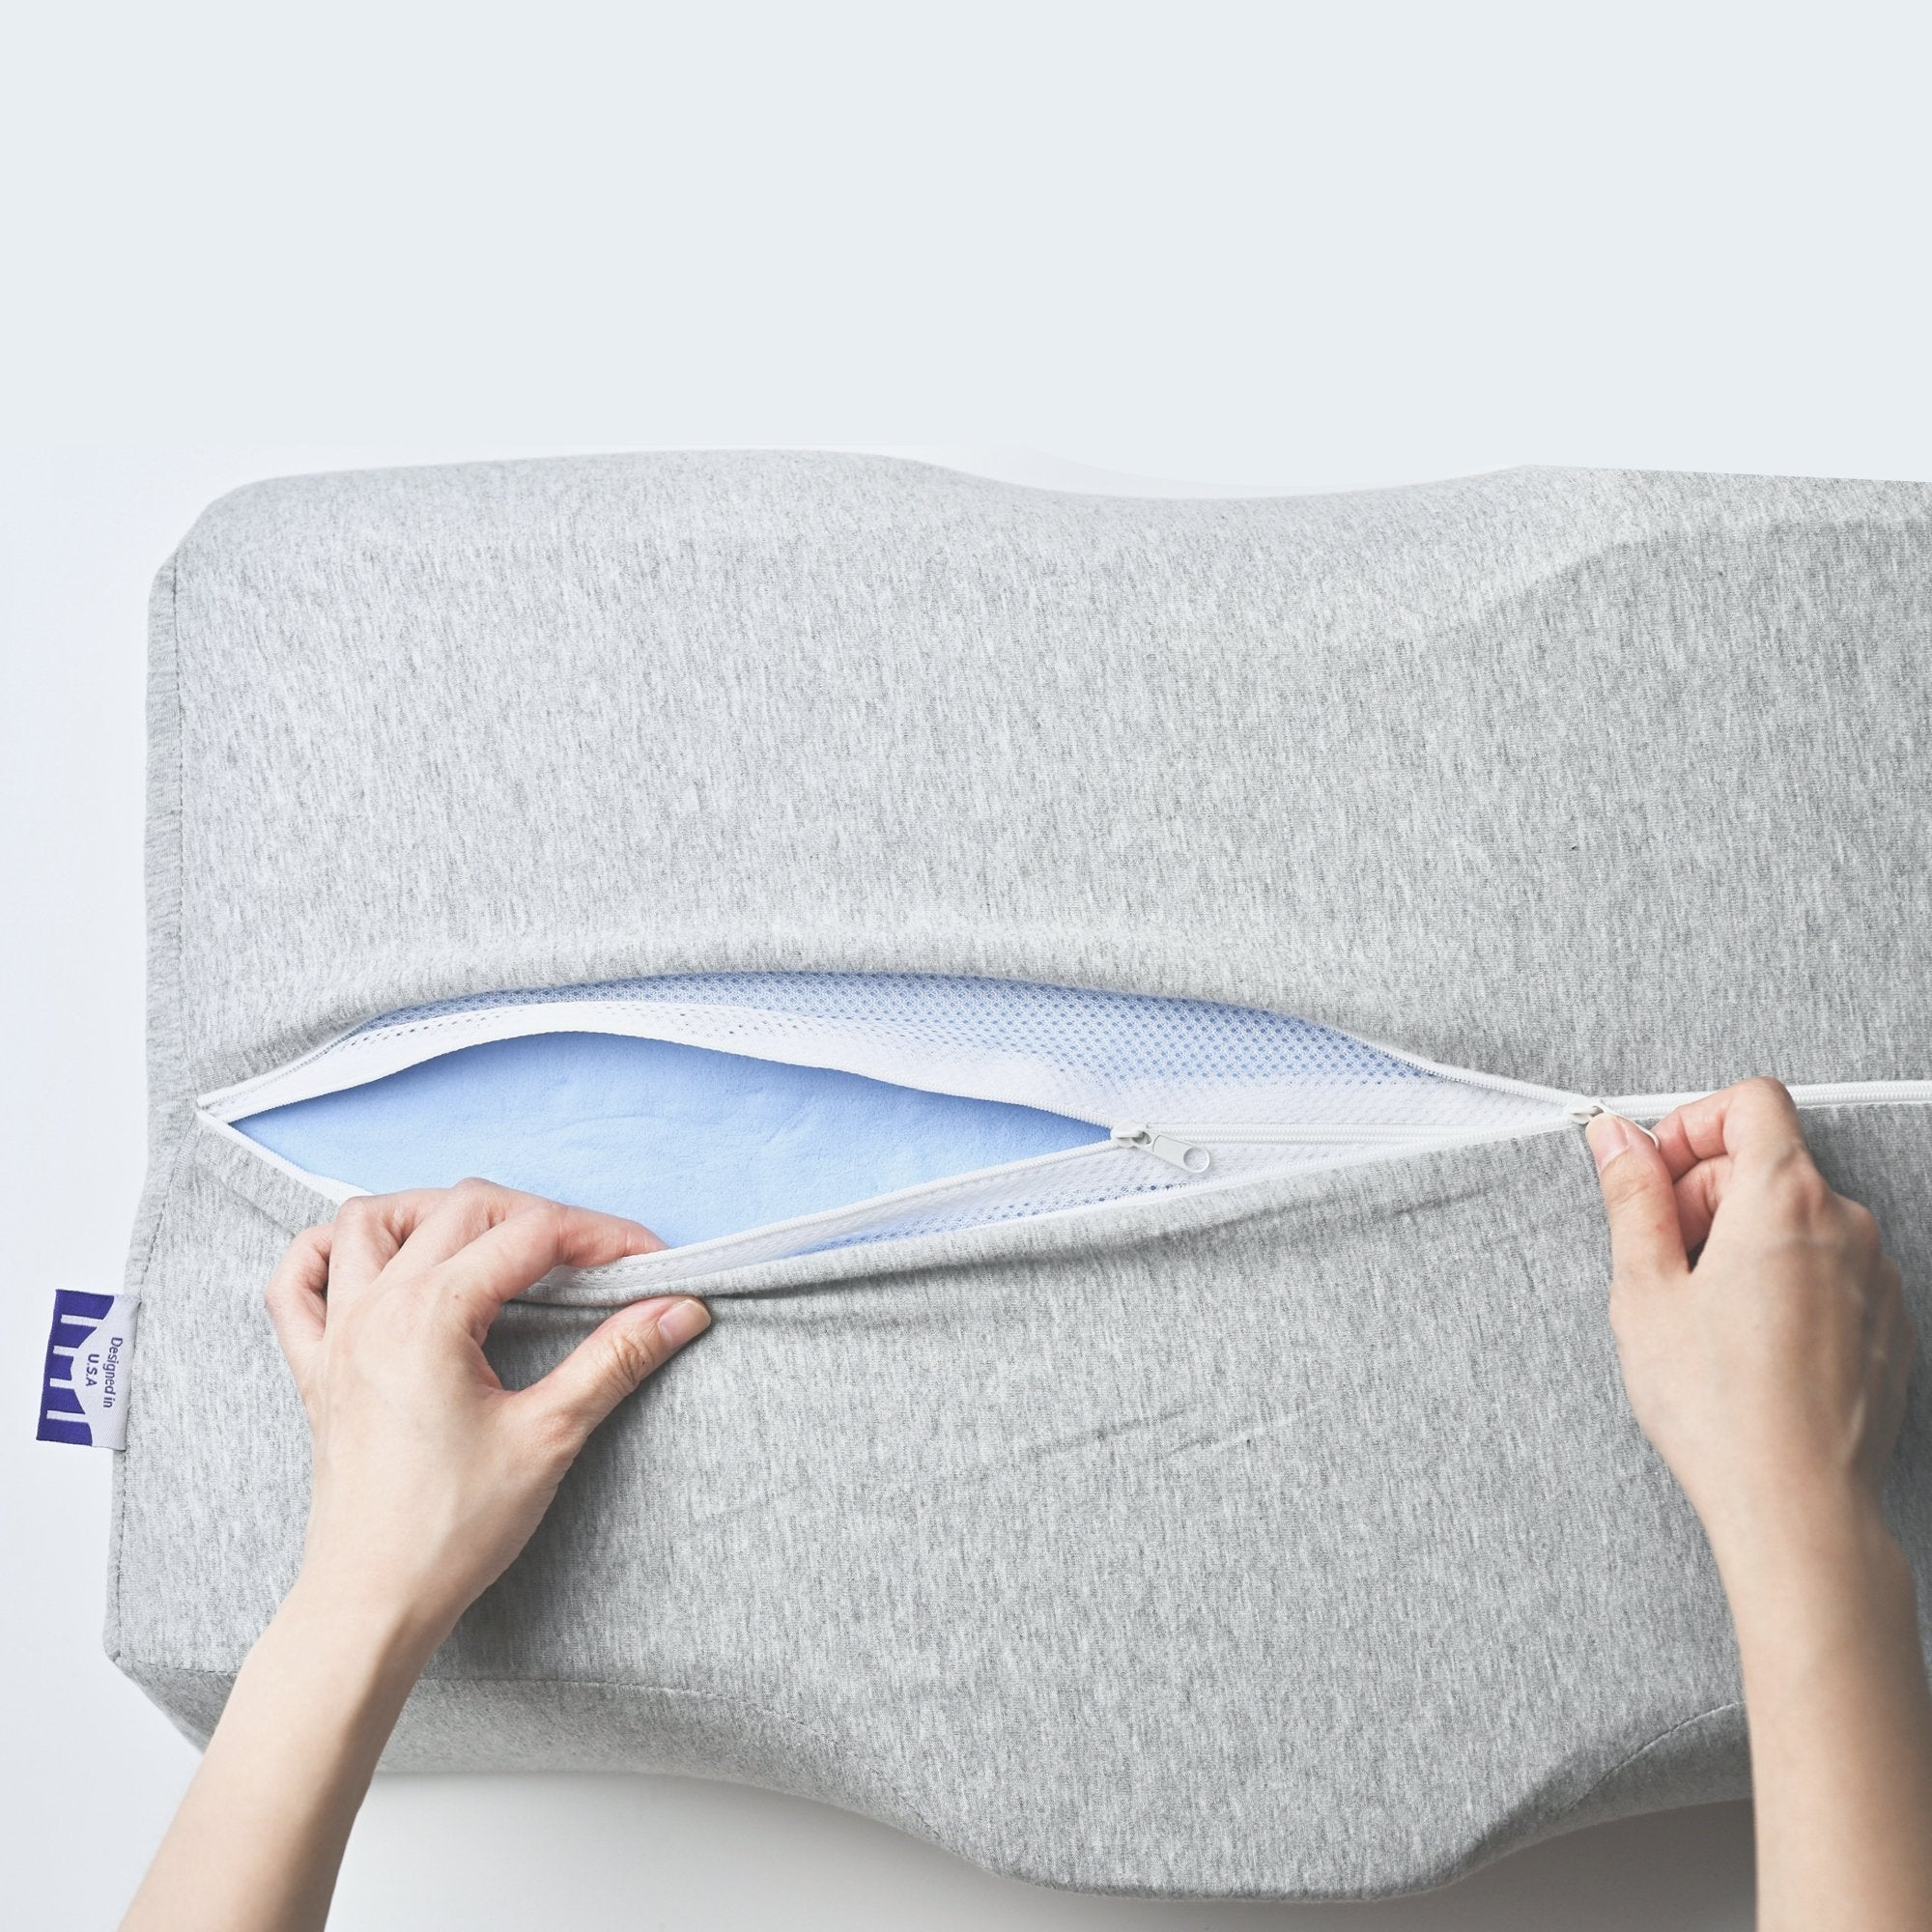 Tempur, neck muscles, llc all rights reserved, proper alignment, memory foam firmness